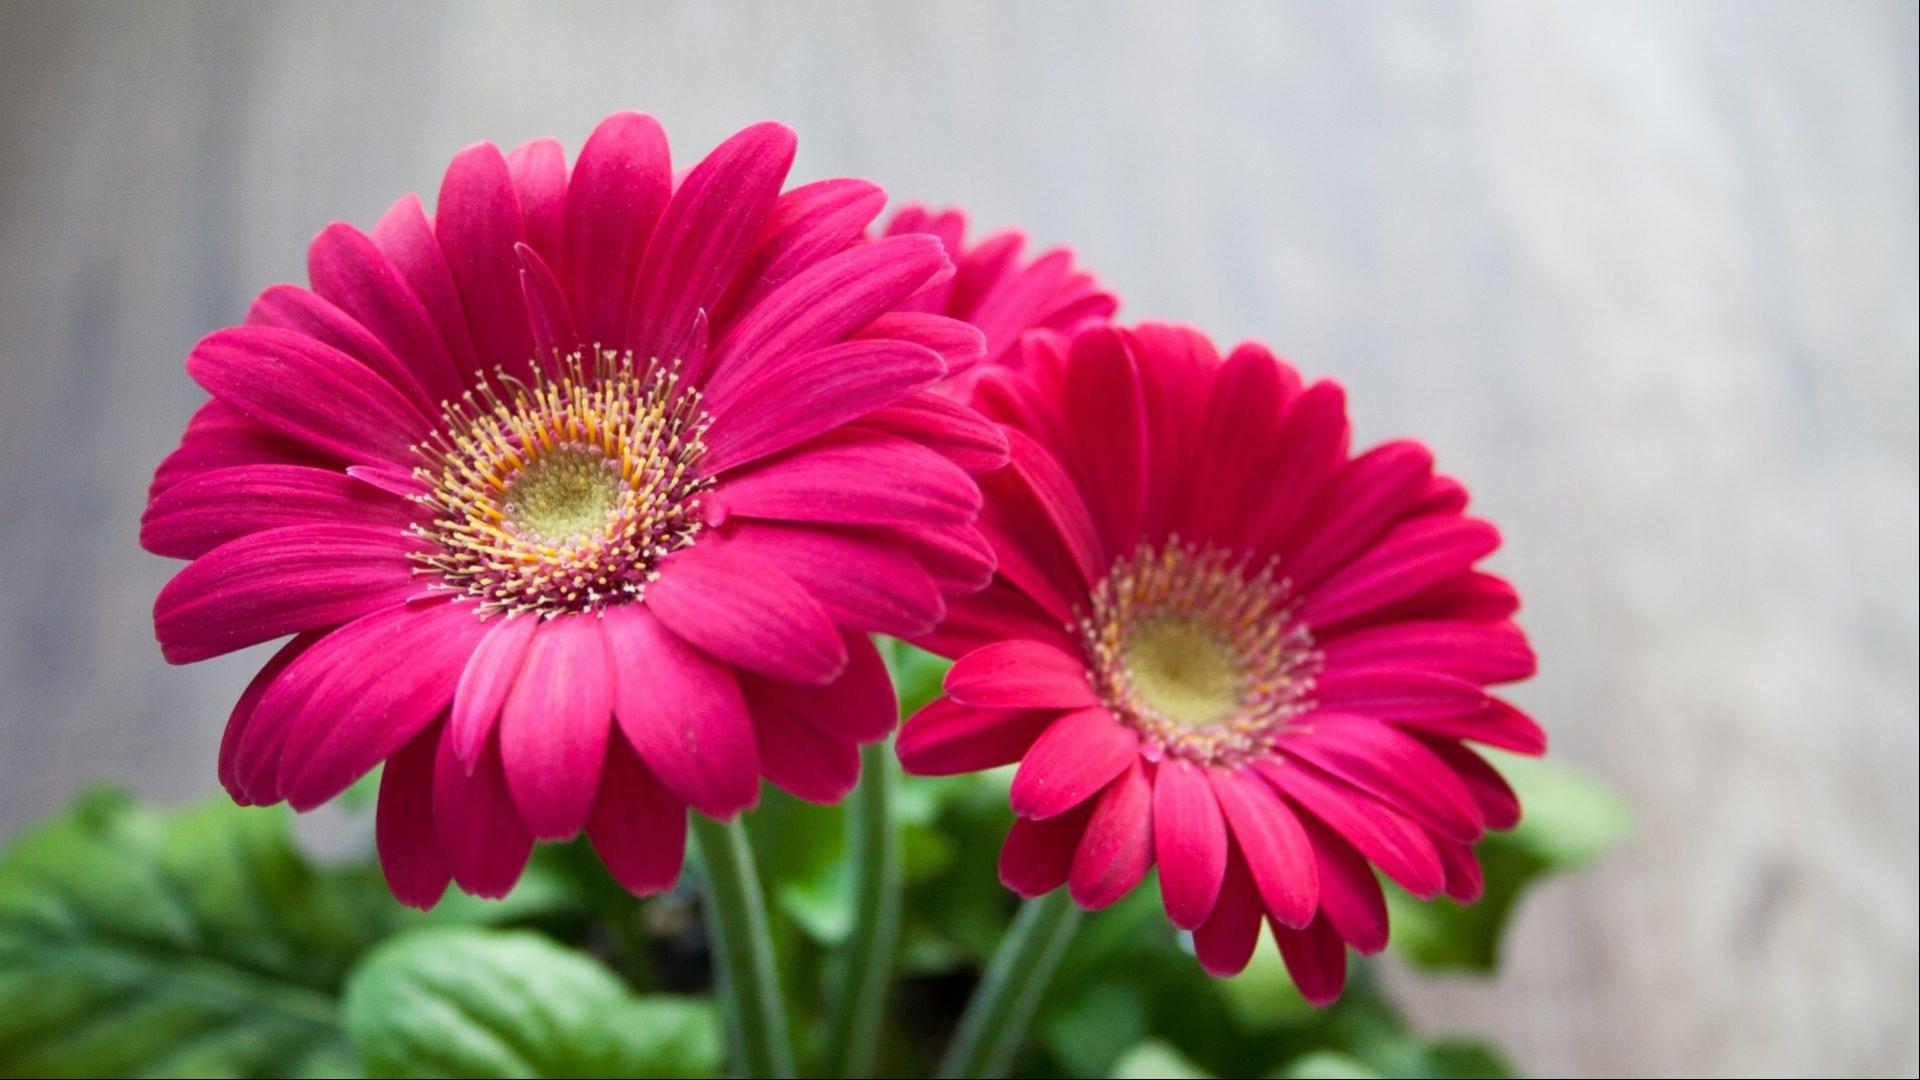 Best Hd Wallpapers For Laptop 1080p With Daisy Flower Pink Best Hd Wallpapers For Laptops And Smartphones